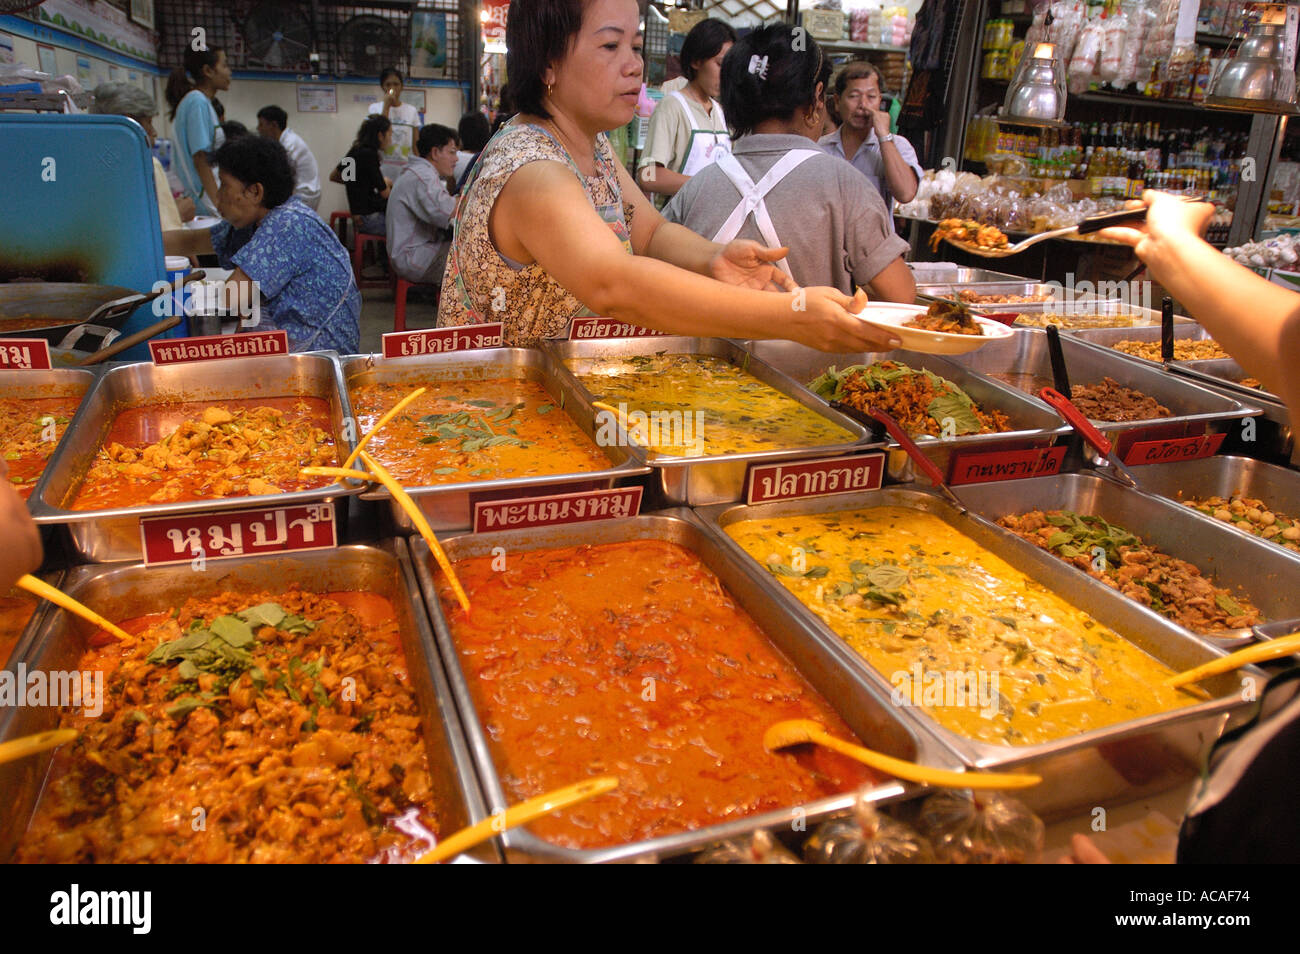 A food stall in the Chatuchak Market in Bangkok Thailand - Stock Image